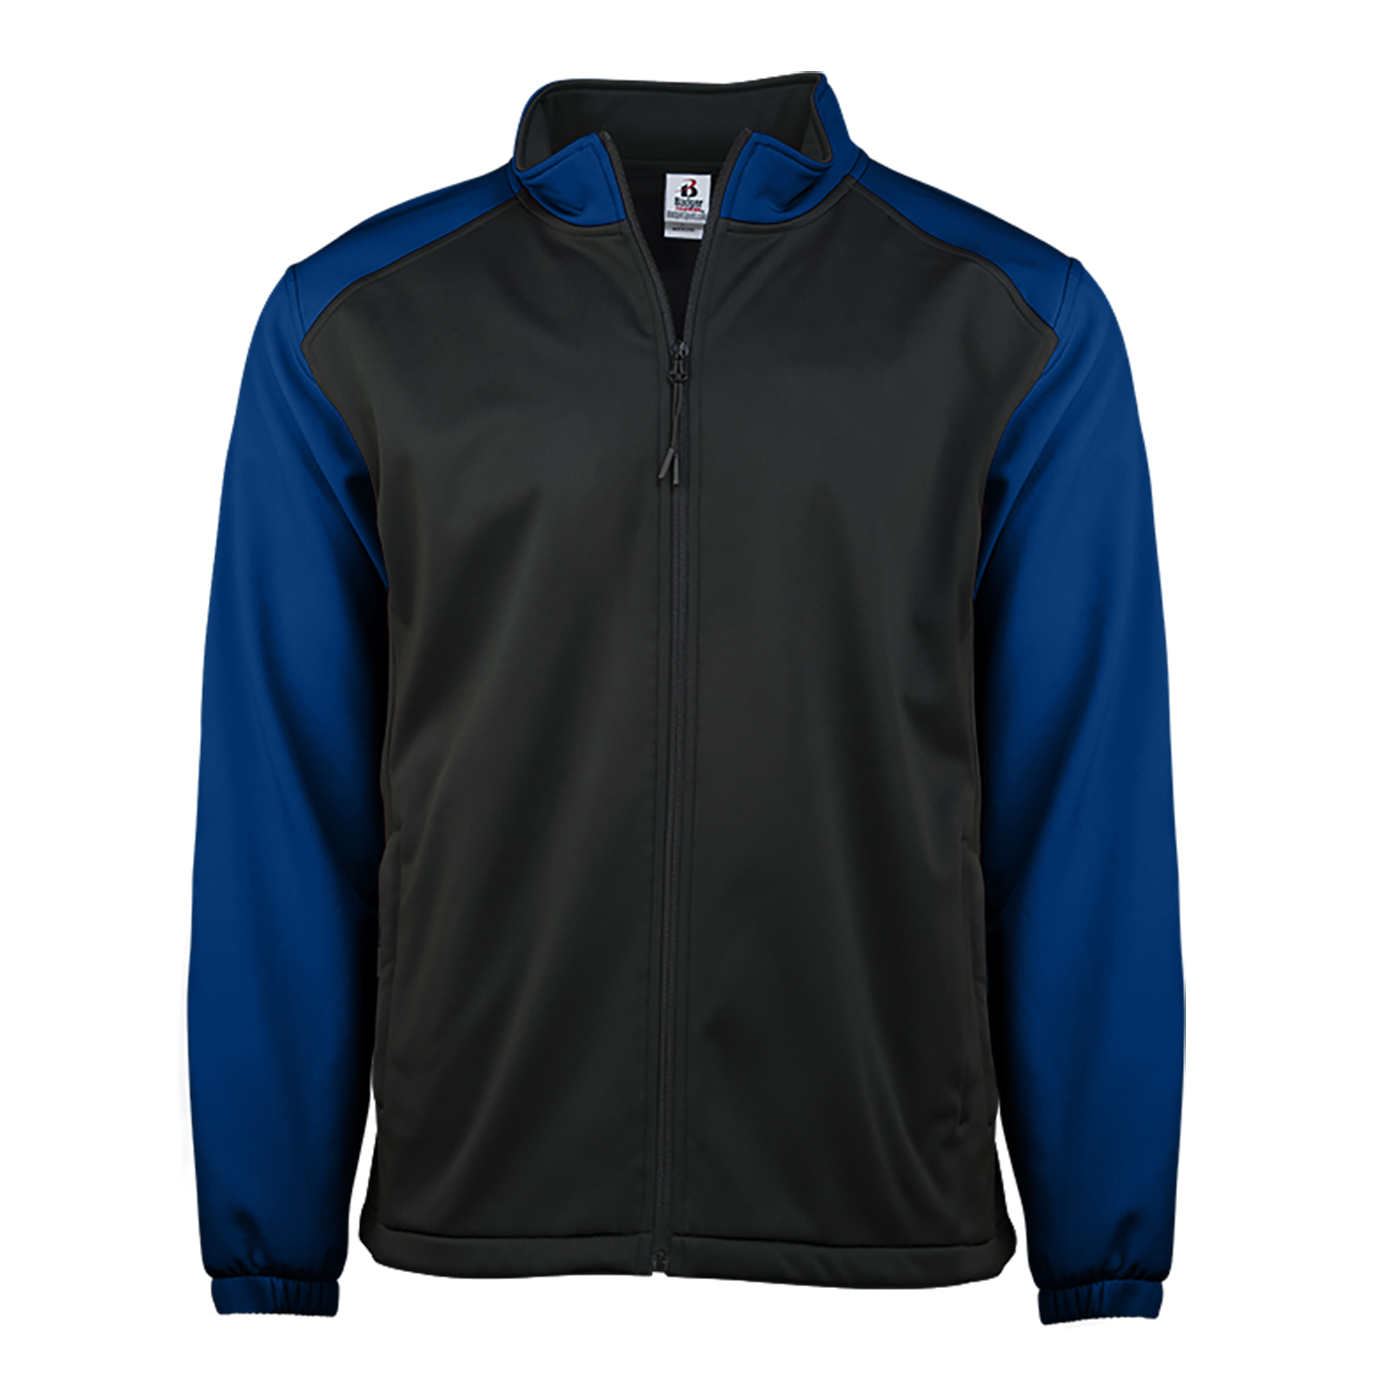 Soft Shell Women's Jacket - Black/Royal